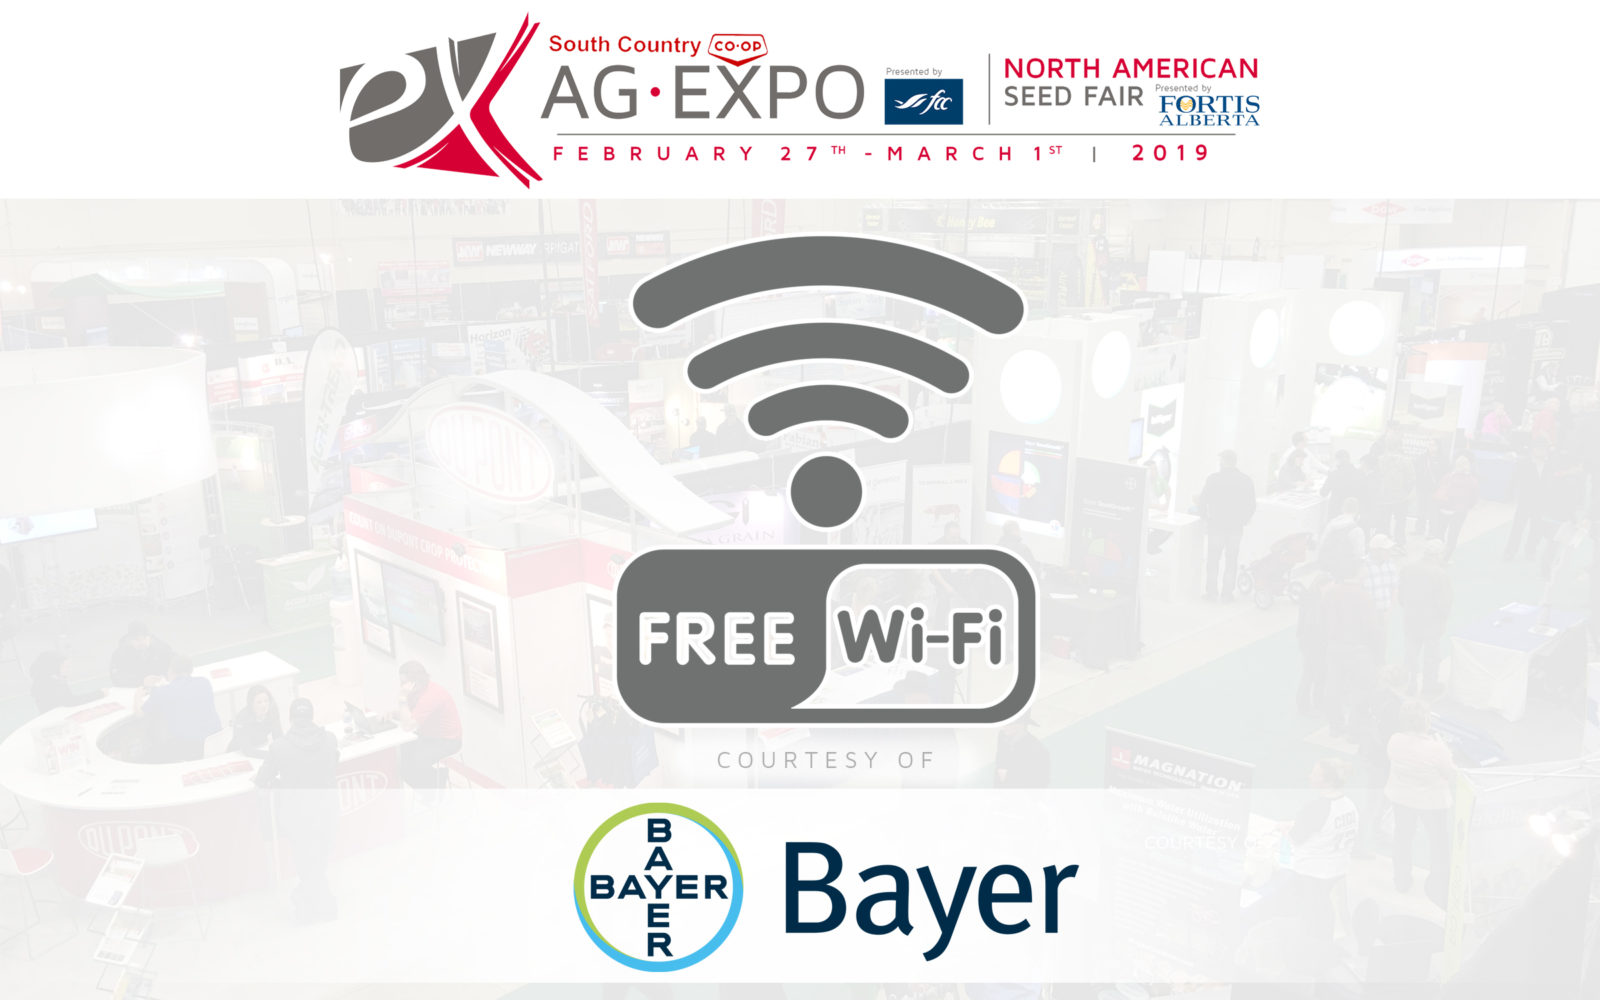 BAYER WIFI AG EXPO